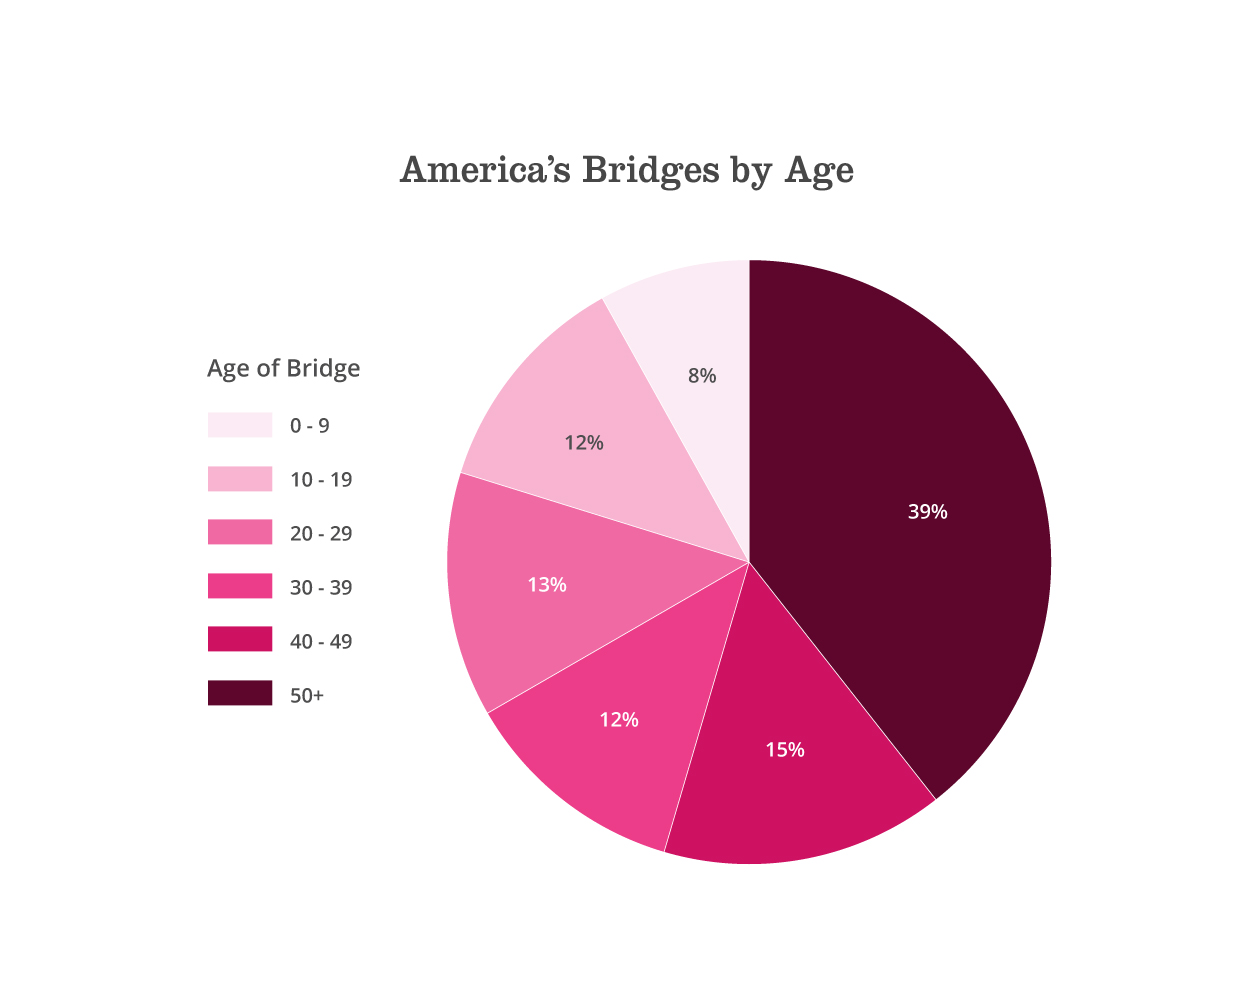 America's bridges by age